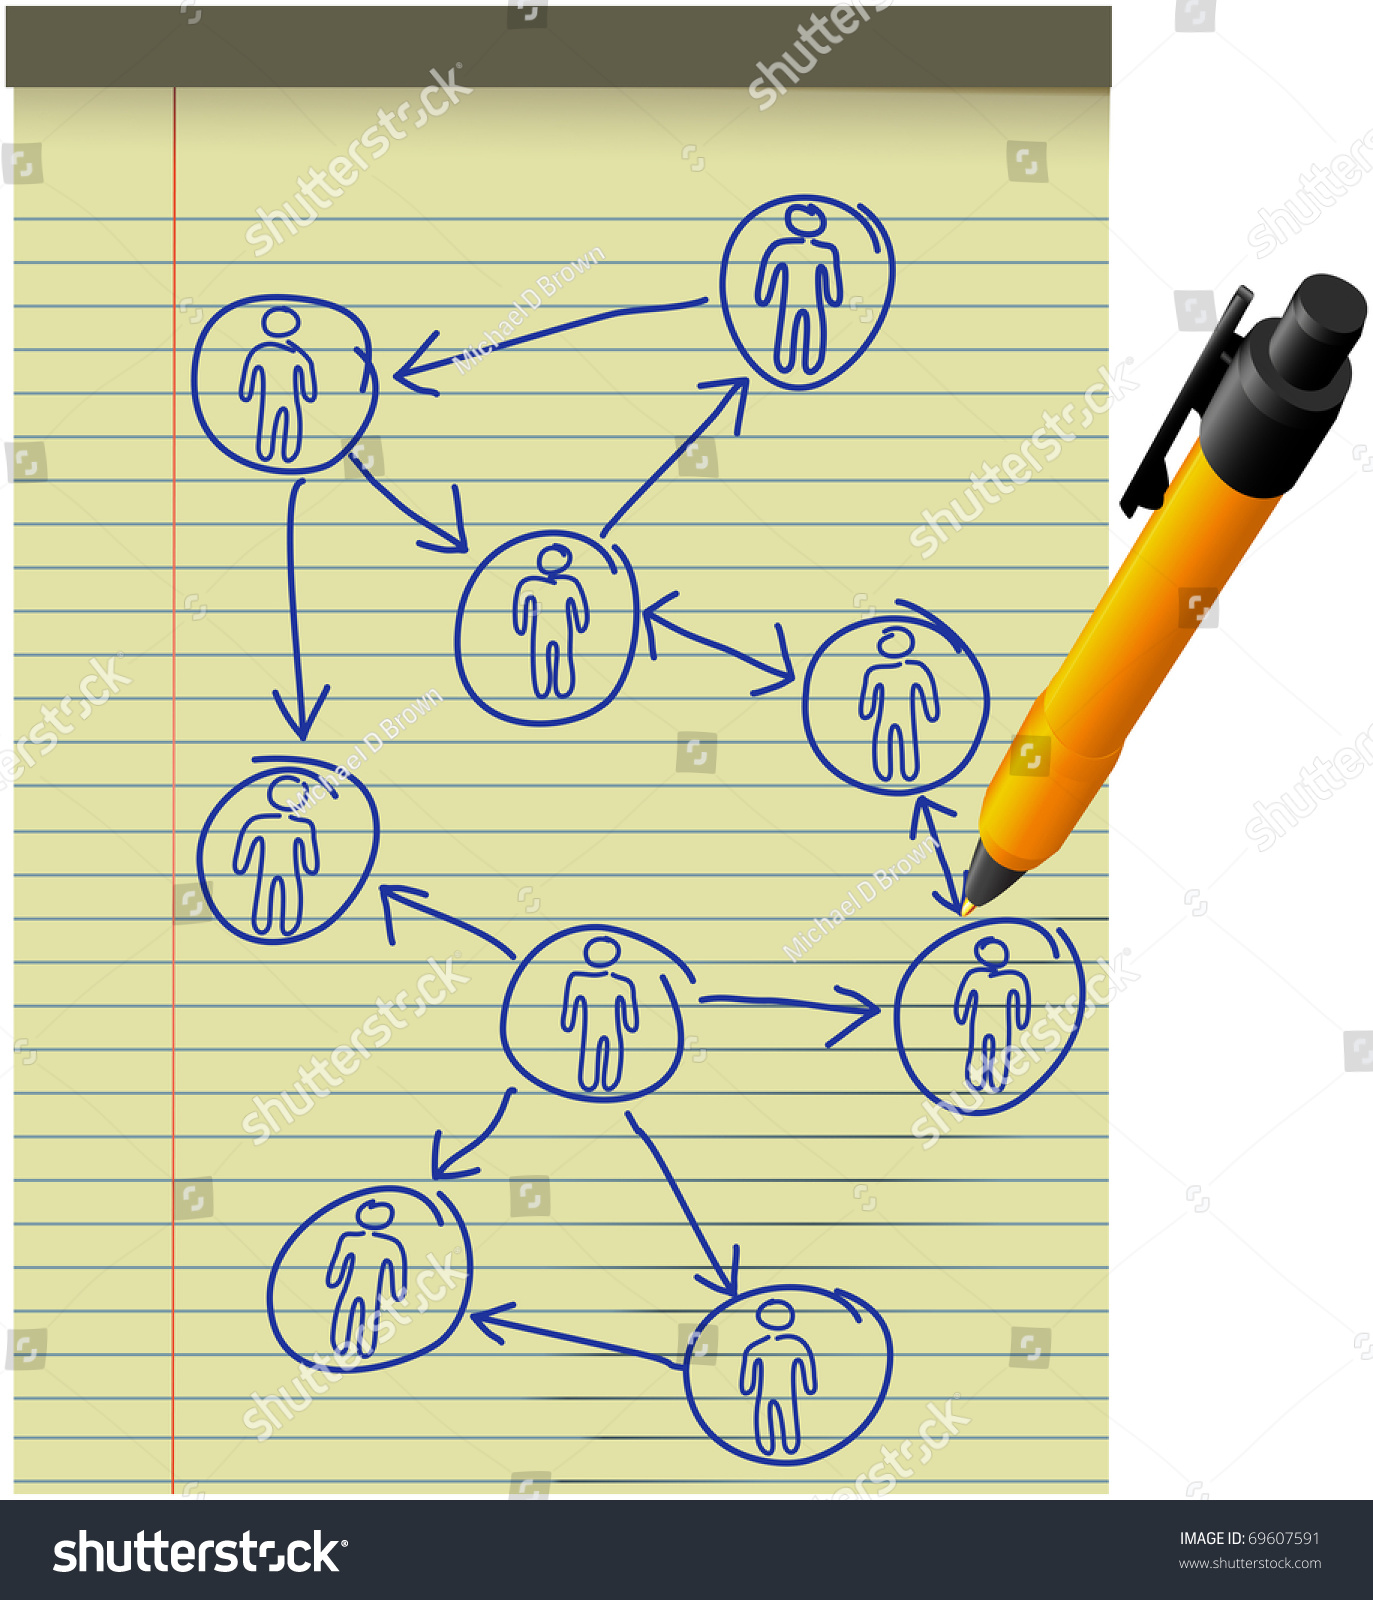 pen drawing a business diagram of human resources network plan on yellow  legal paper pad